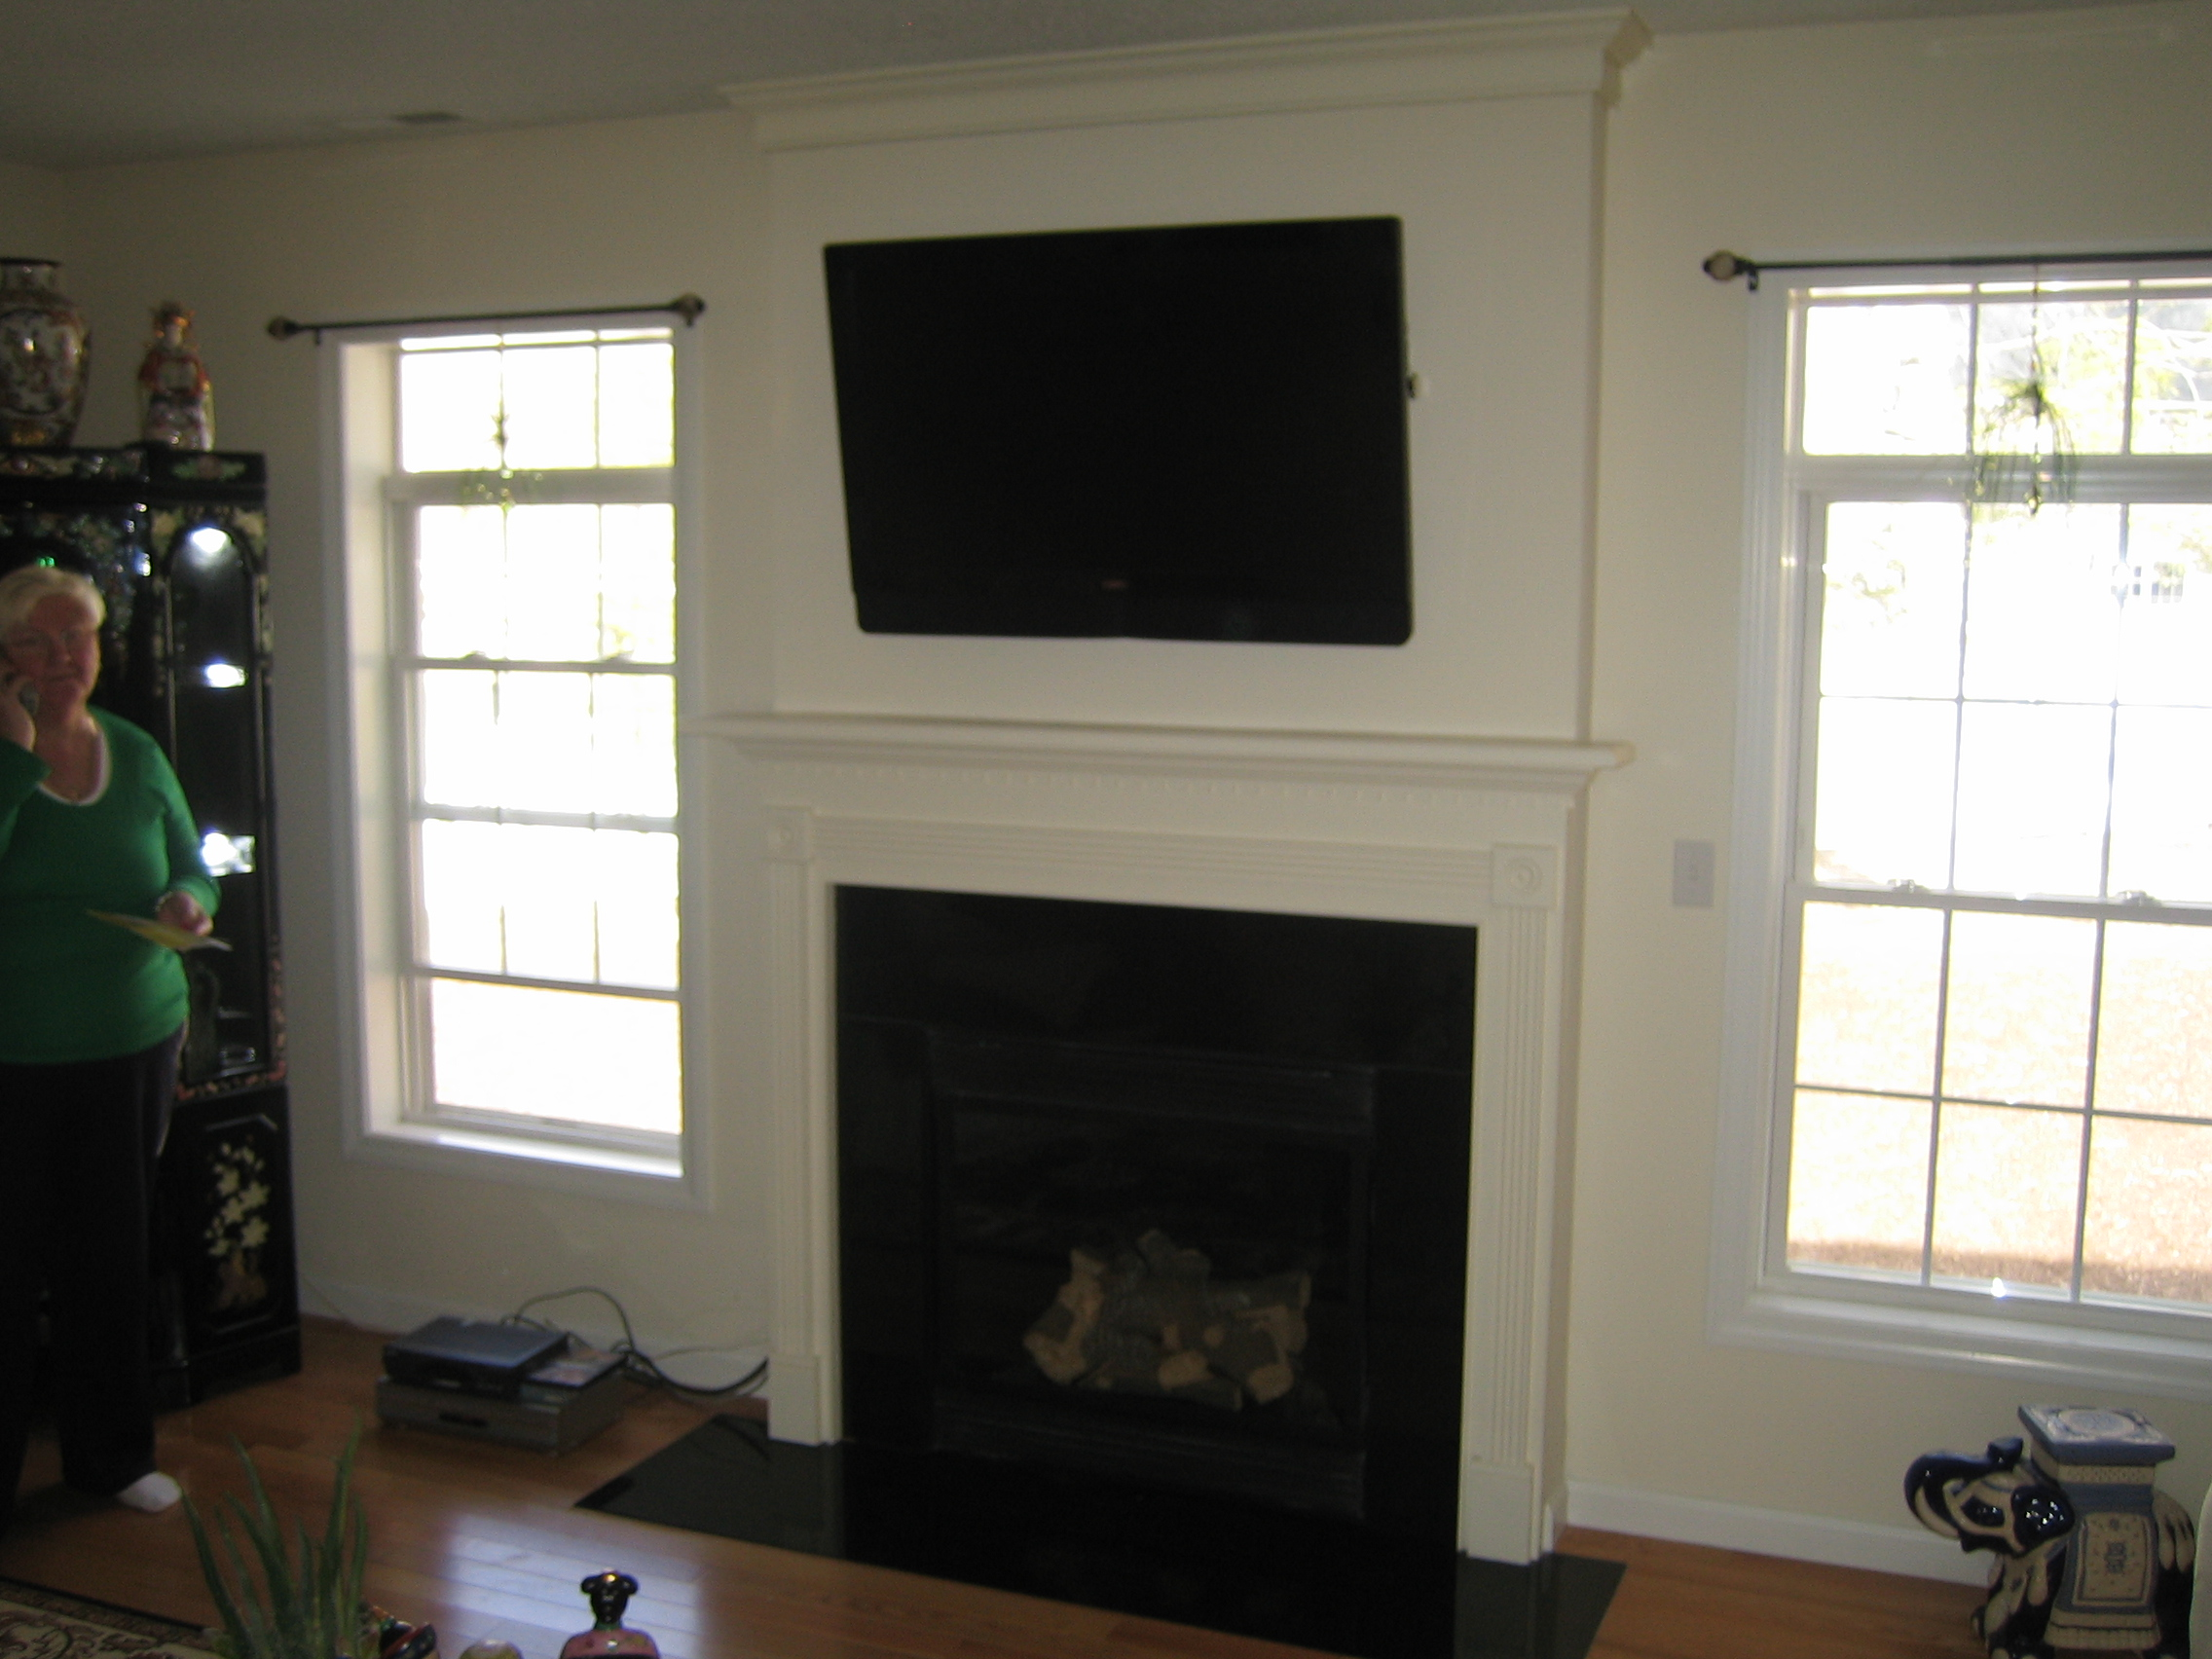 Woodbridge ct tv mounted over fireplace all wires hidden for Tv over fireplace